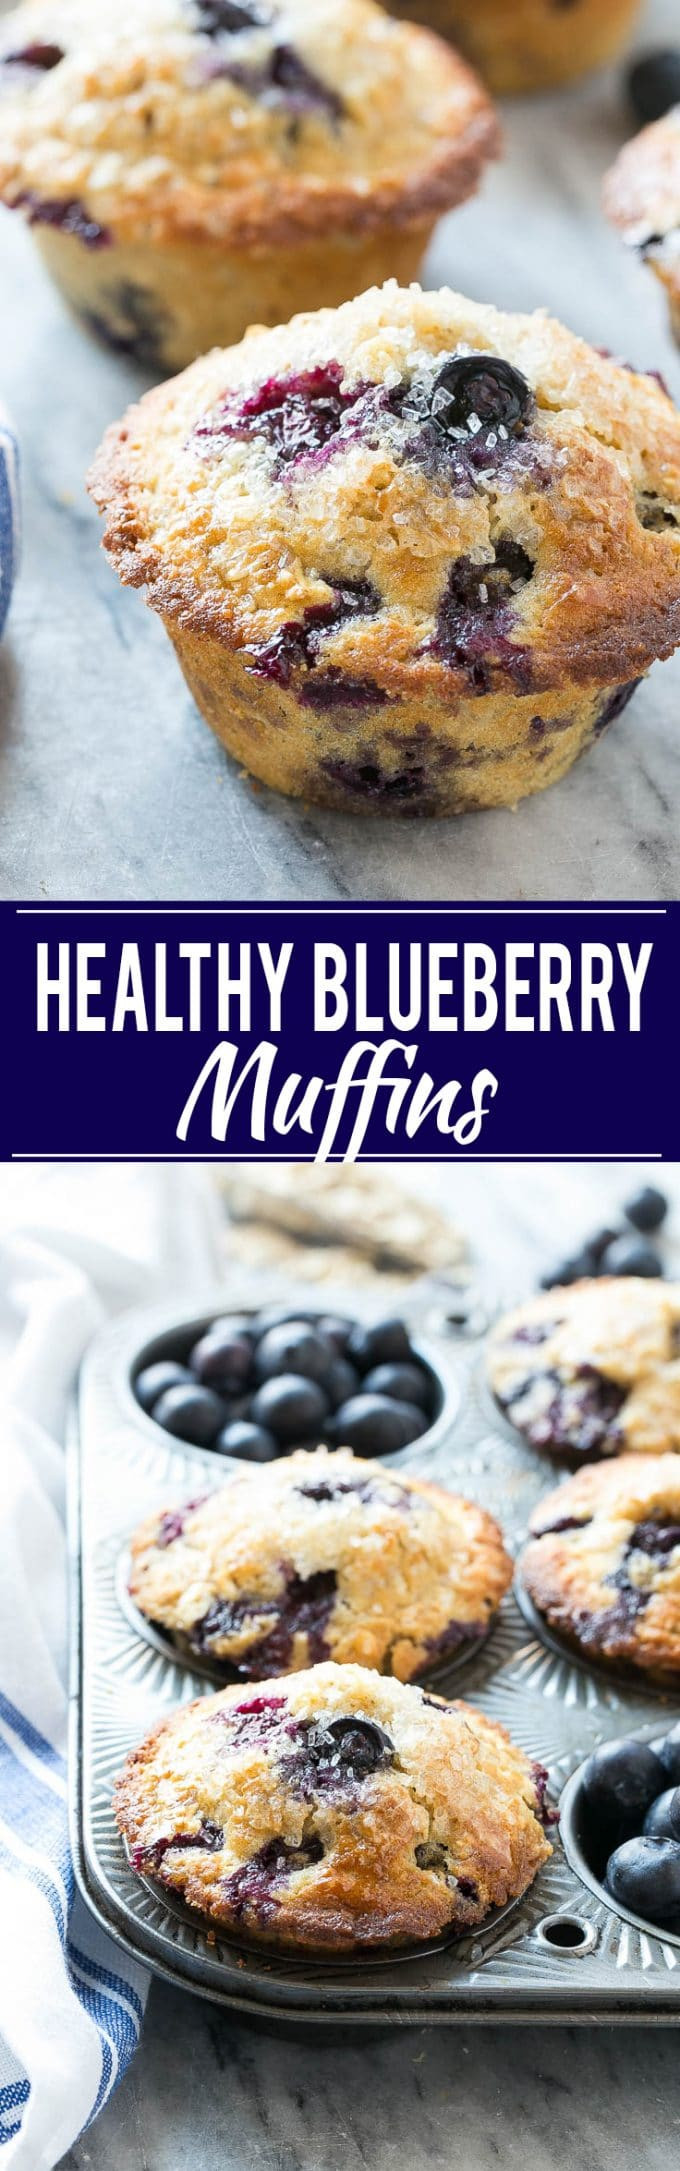 Healthy Blueberry Muffins With Applesauce  healthy blueberry muffins with applesauce